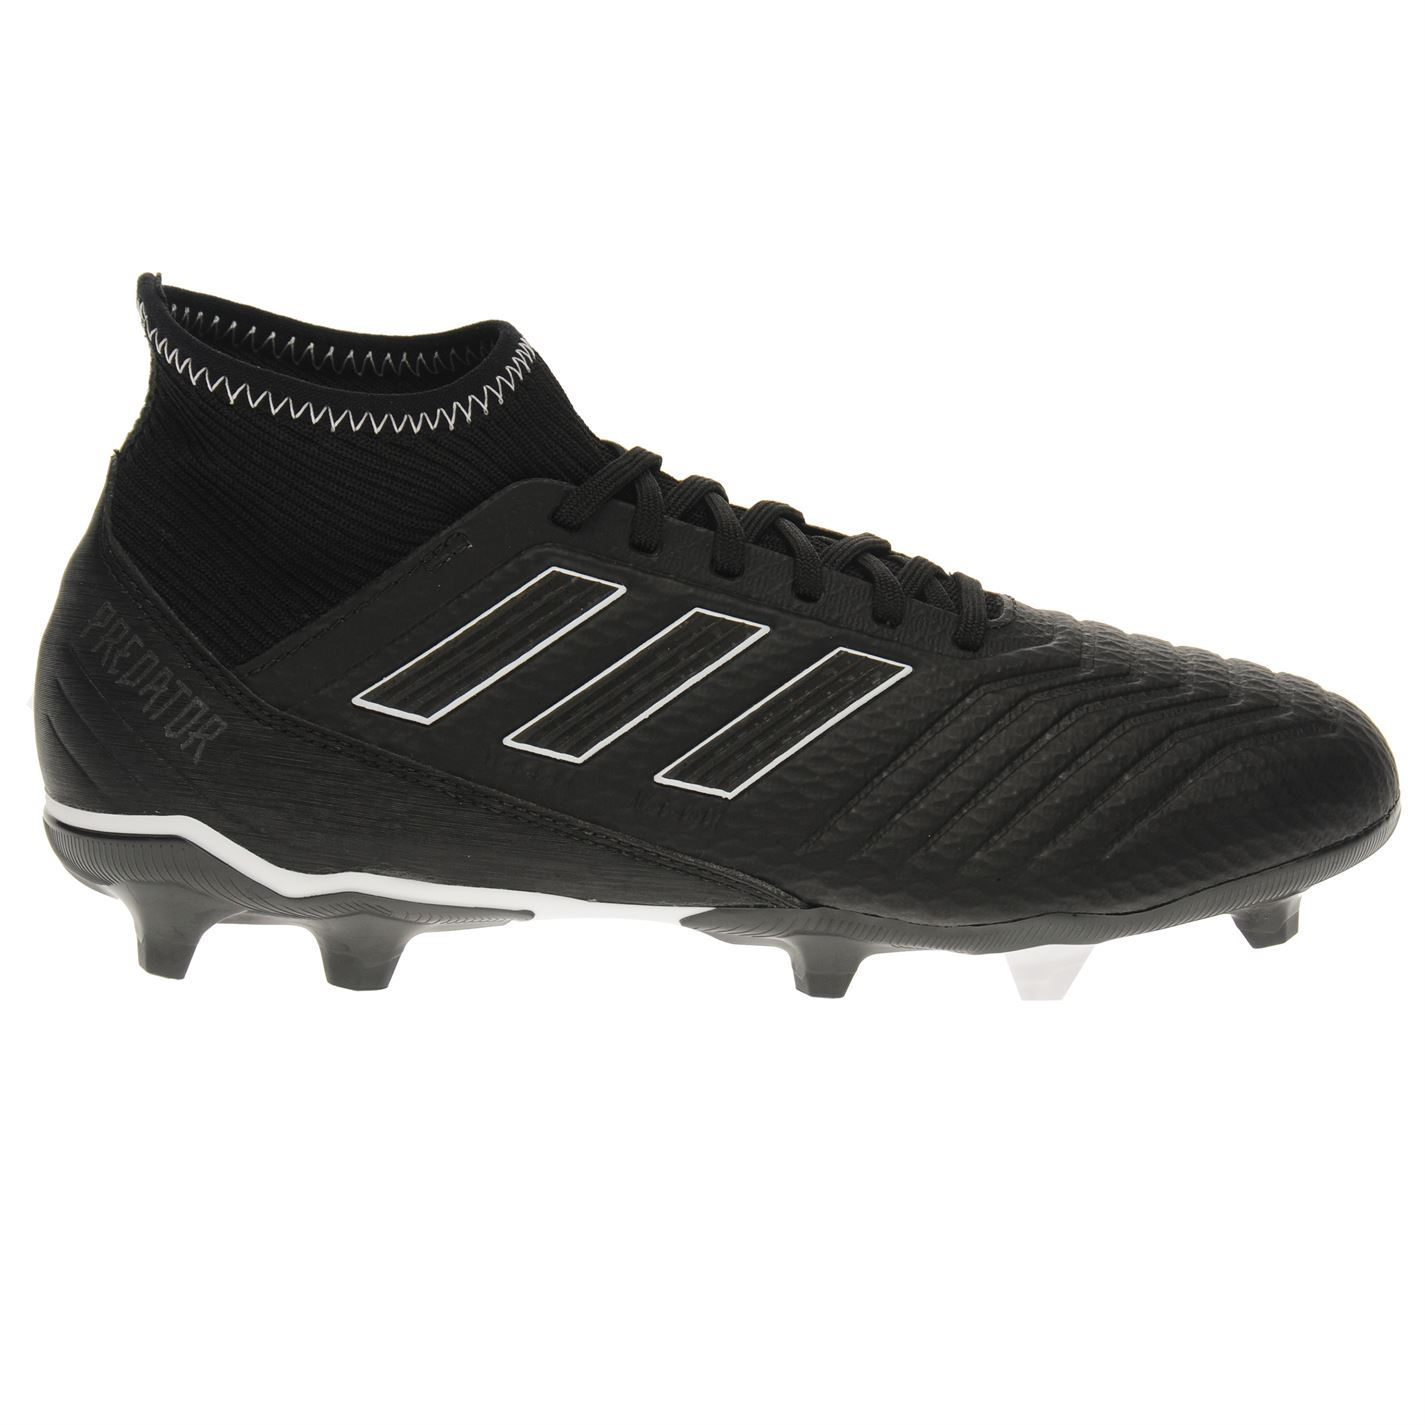 ce2781a1988faf adidas Predator 18.3 FG Firm Ground Football Boots Mens Black Soccer Shoe  Cleats